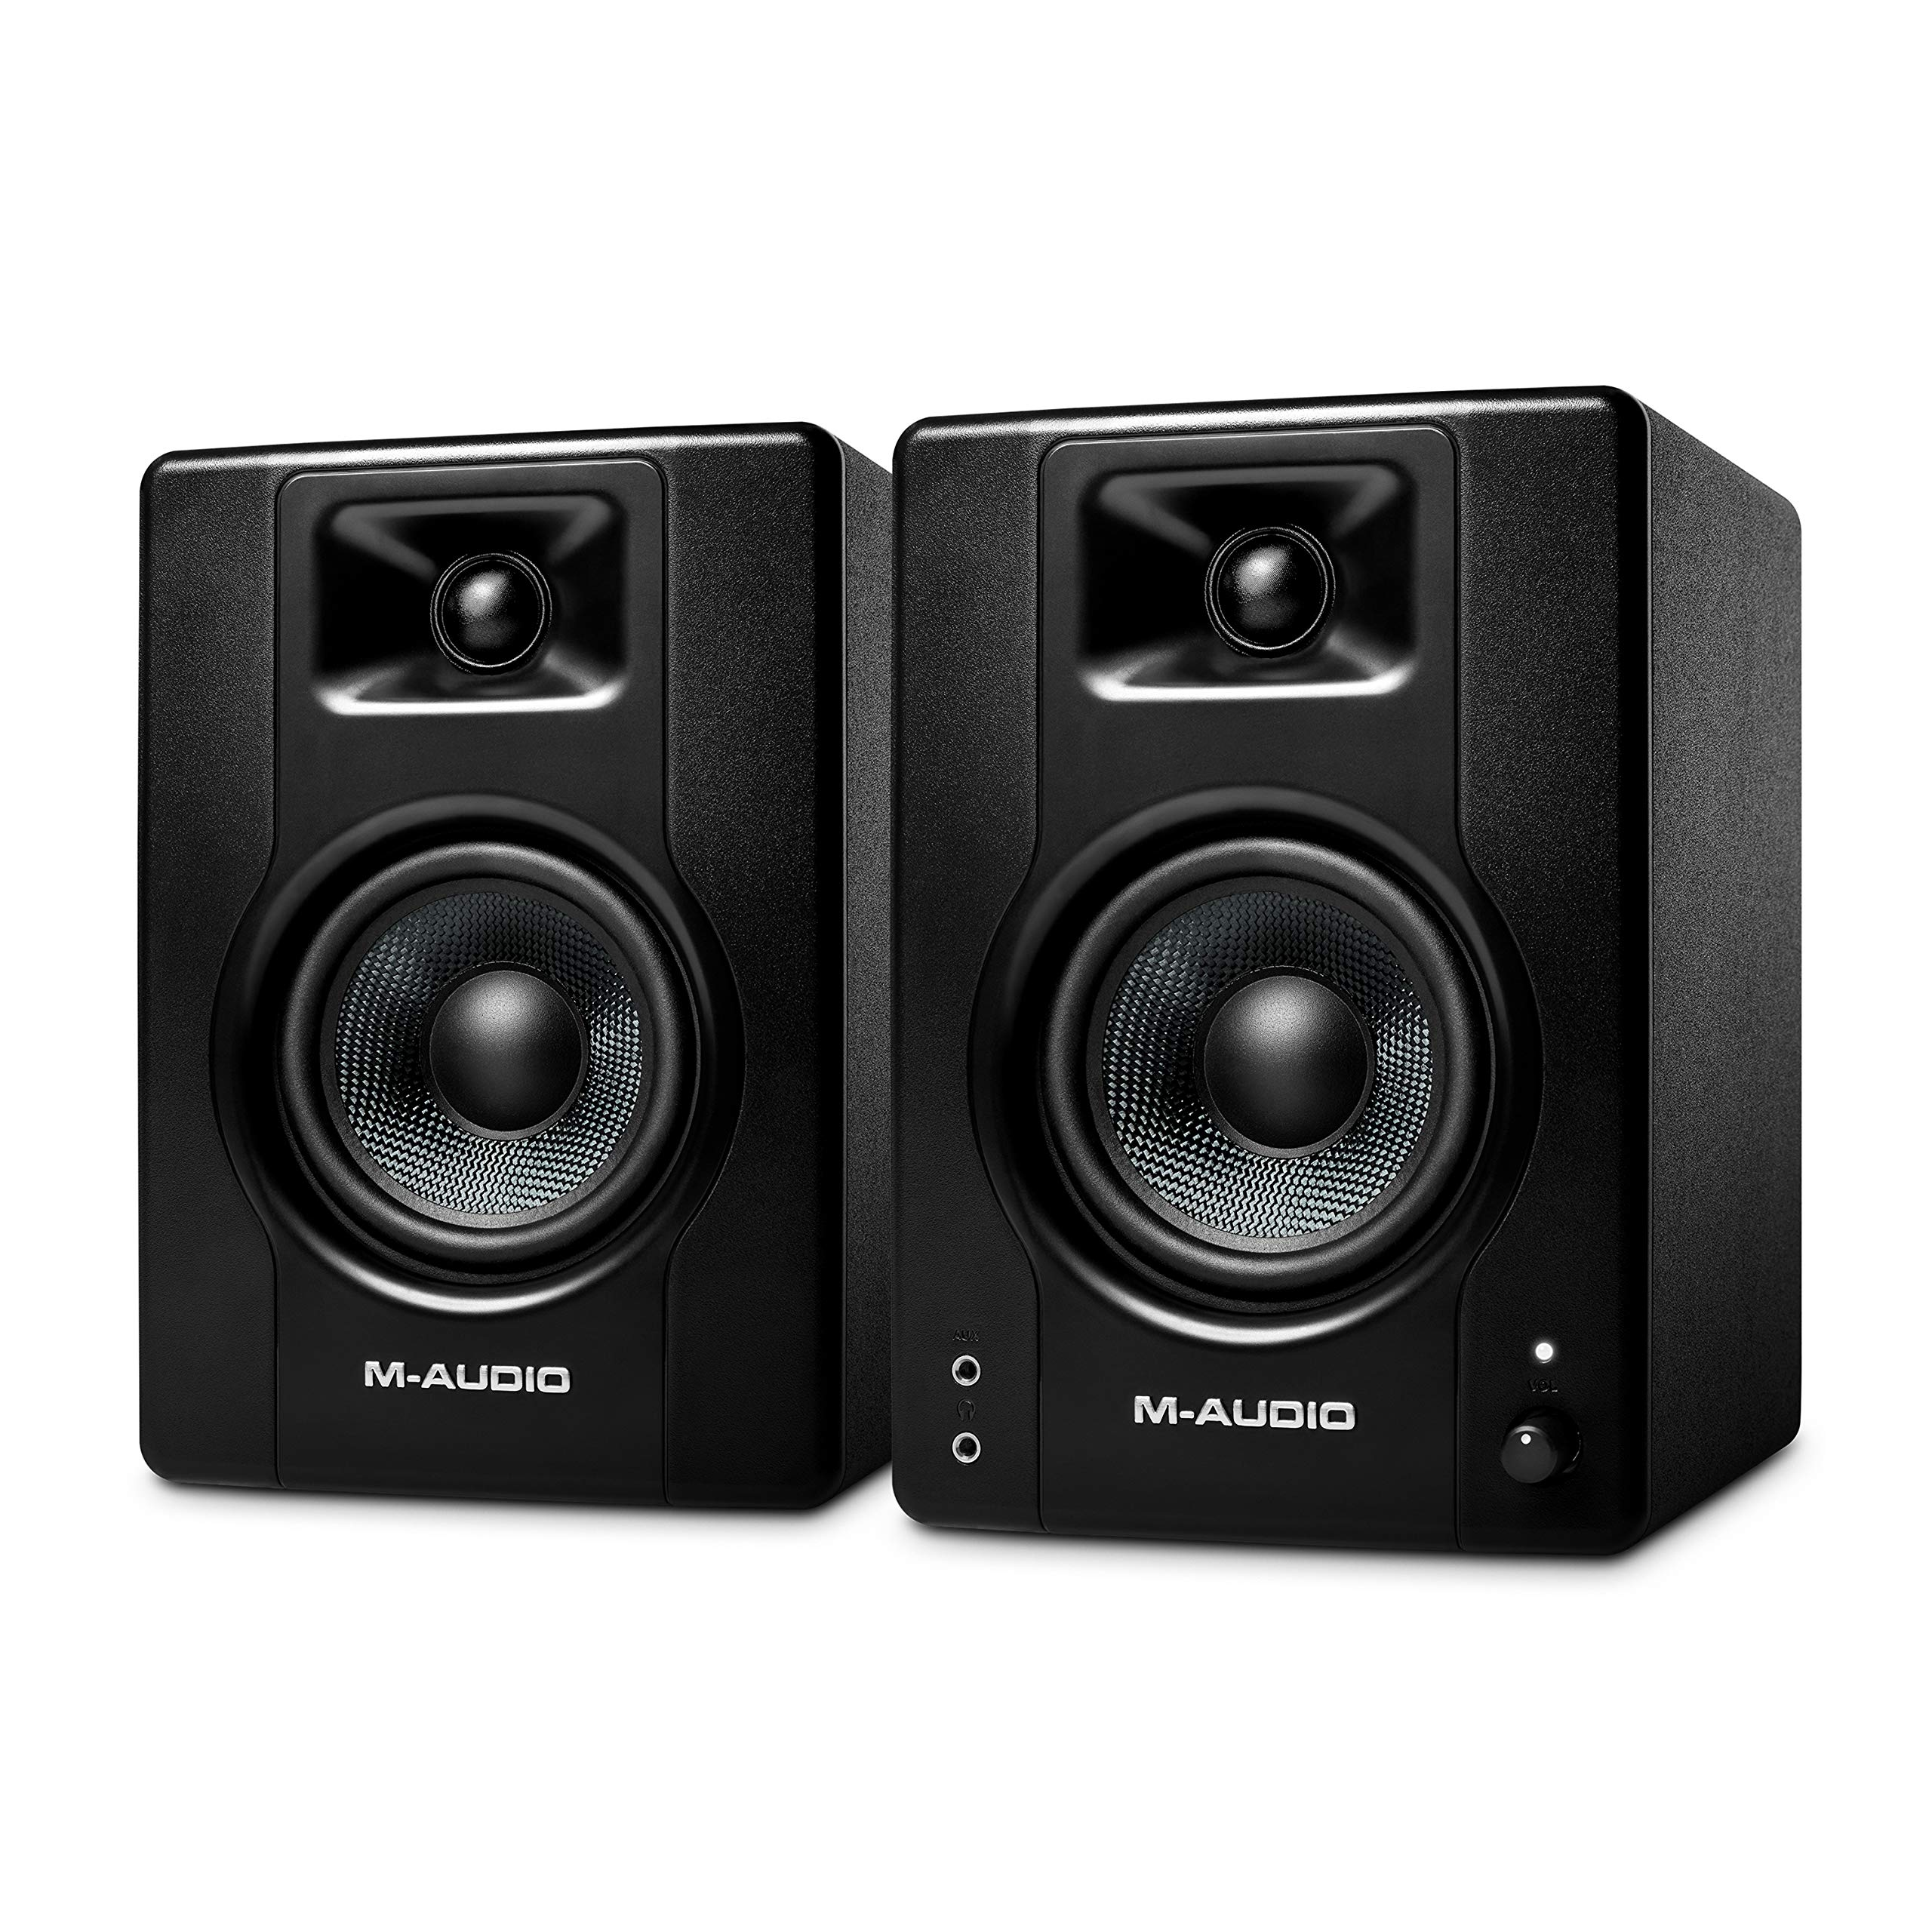 M-Audio BX4 - 120-Watt Powered Desktop Computer Speakers / Studio Monitors for Gaming, Music Production, Live Streaming and Podcasting (Pair)